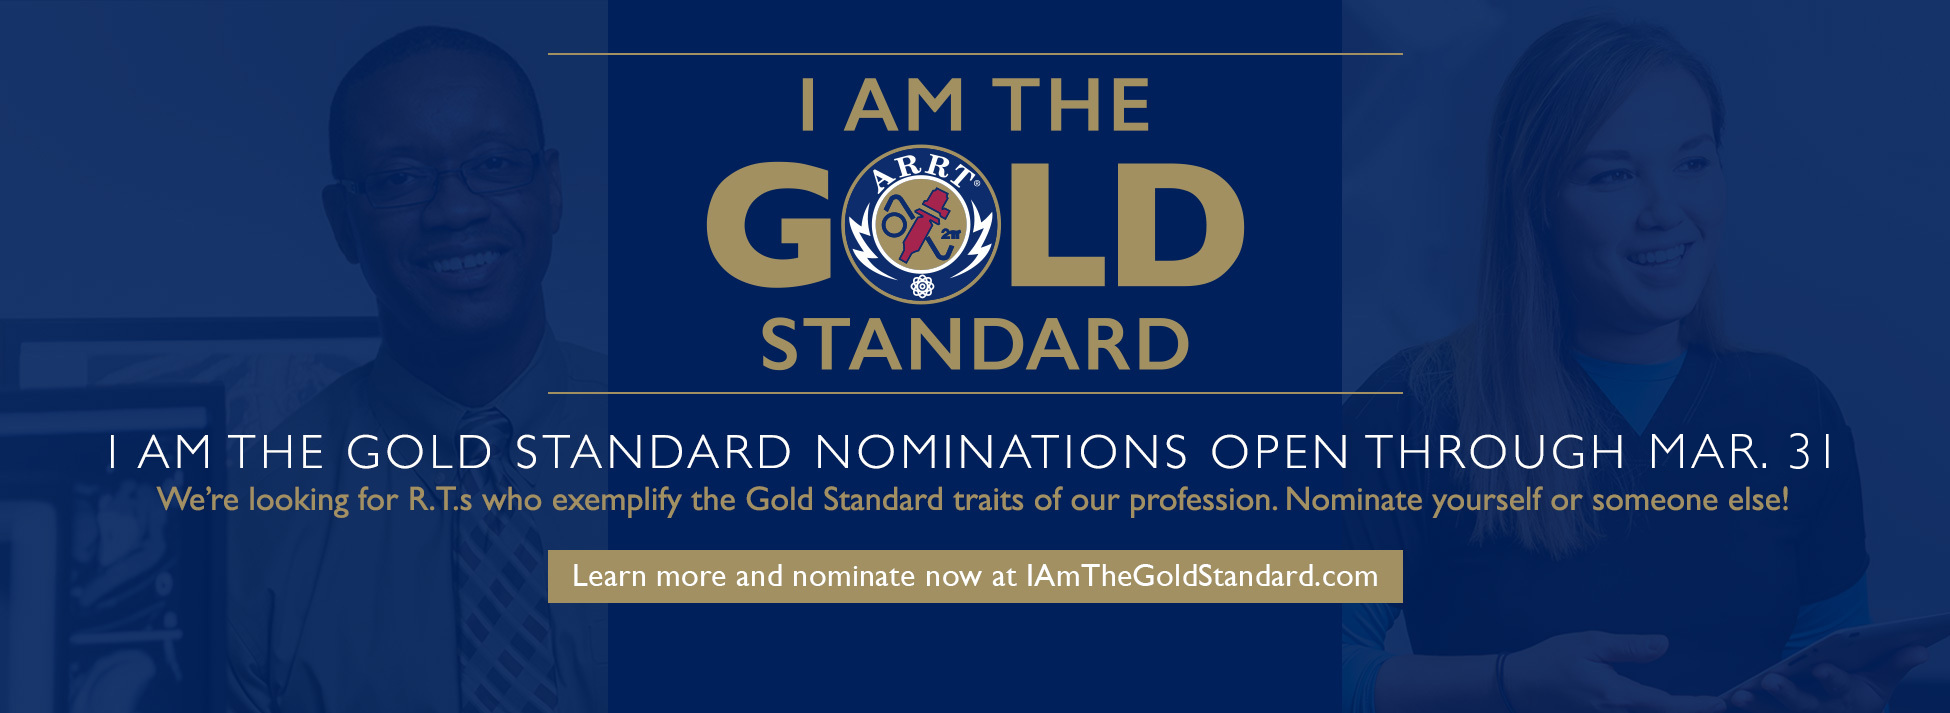 I Am The Gold Standard 2021 Nominations Open Through March 31